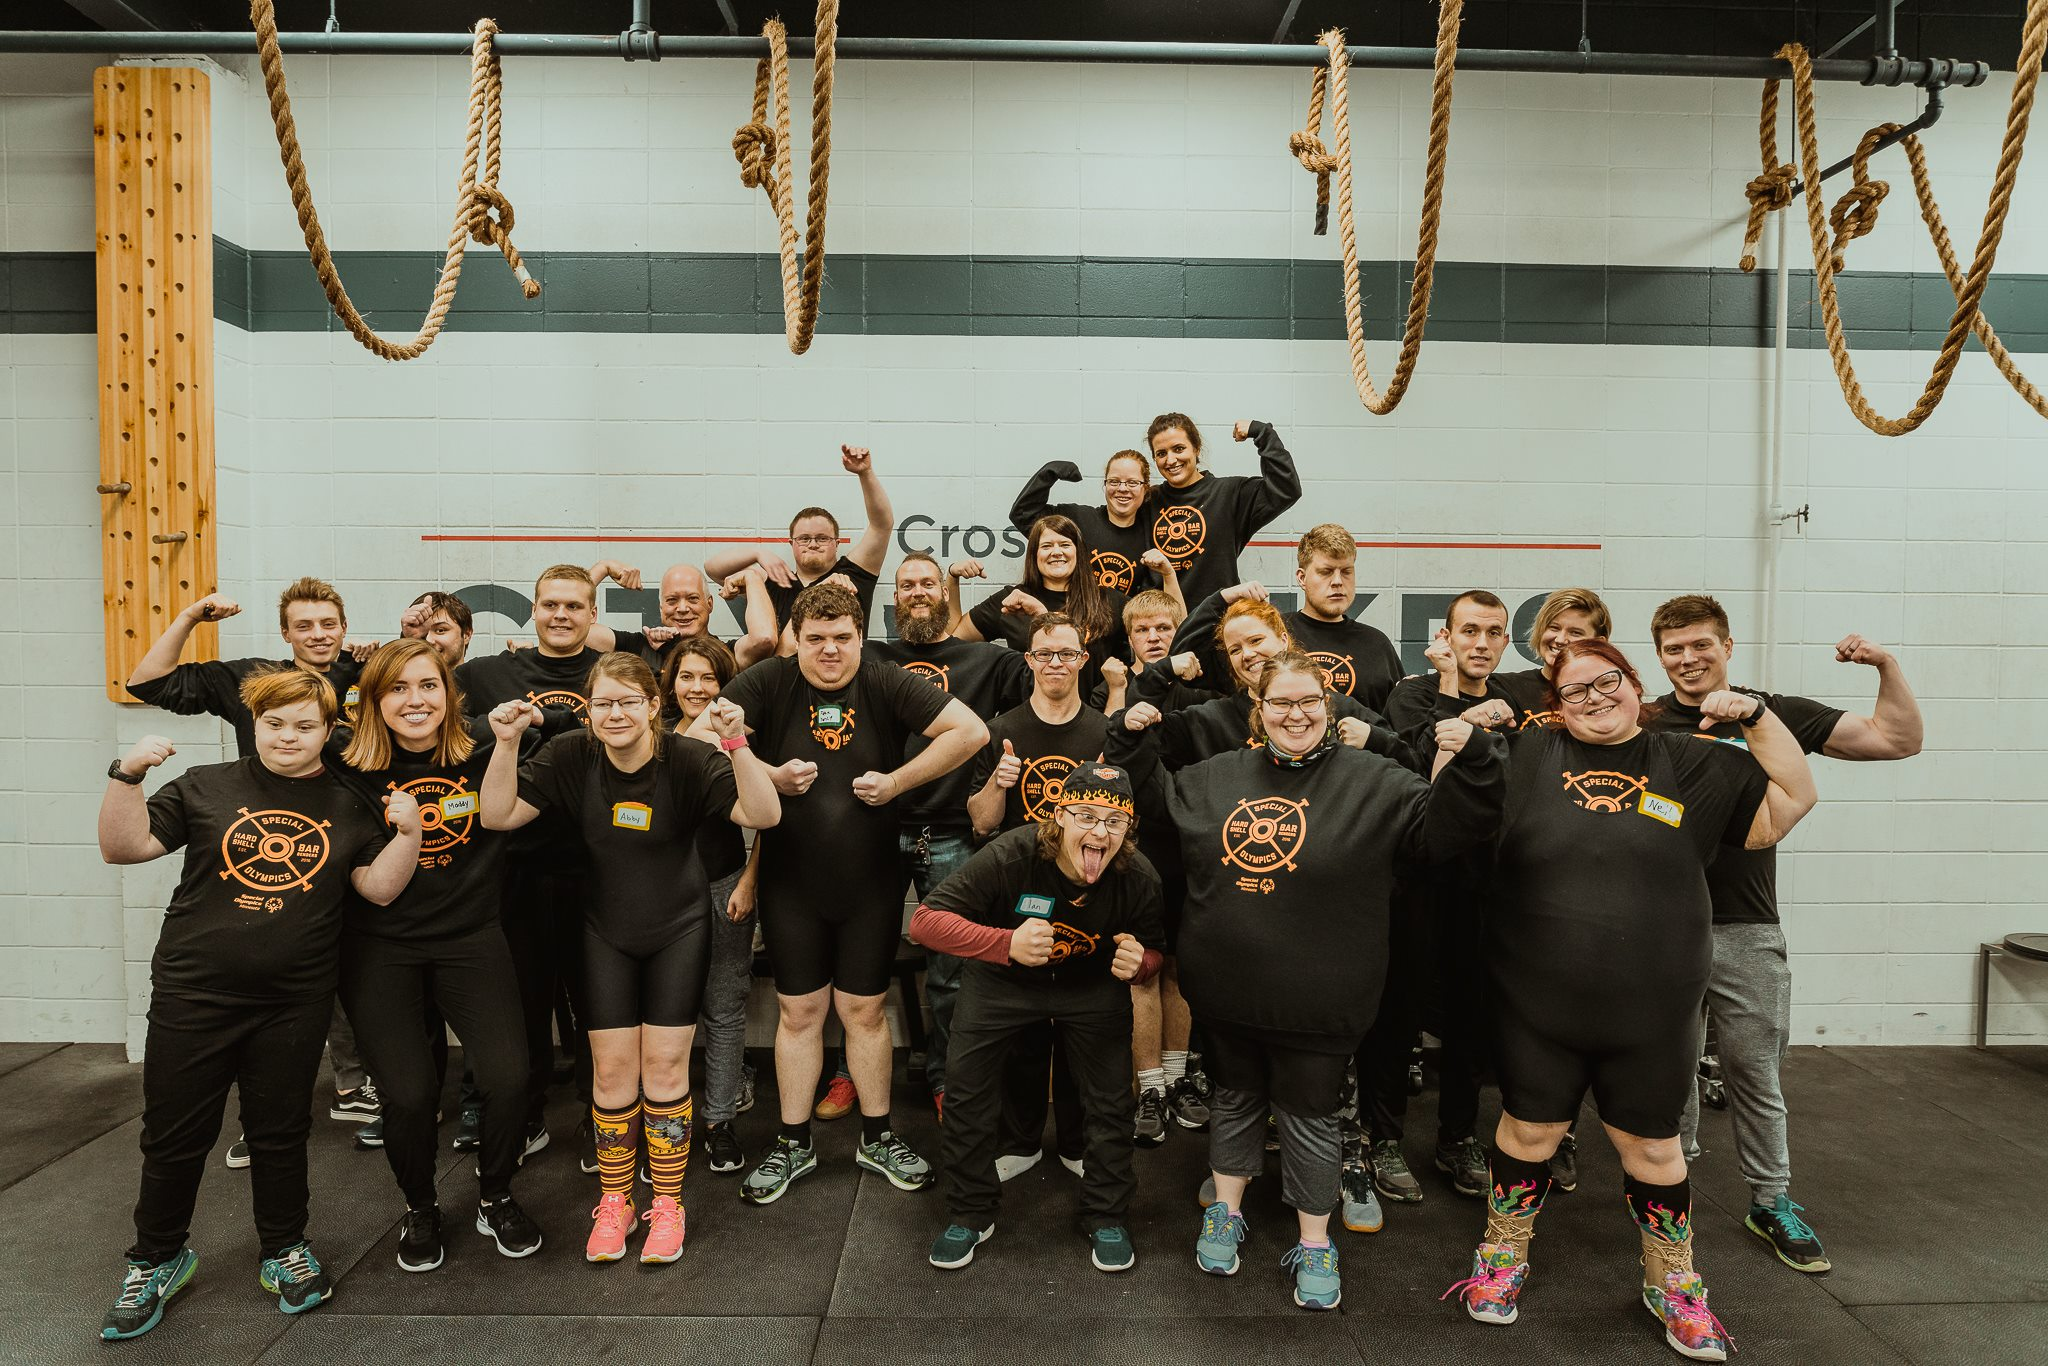 View all the photos from the mock meet at the    CrossFit City of Lake's Facebook page   .